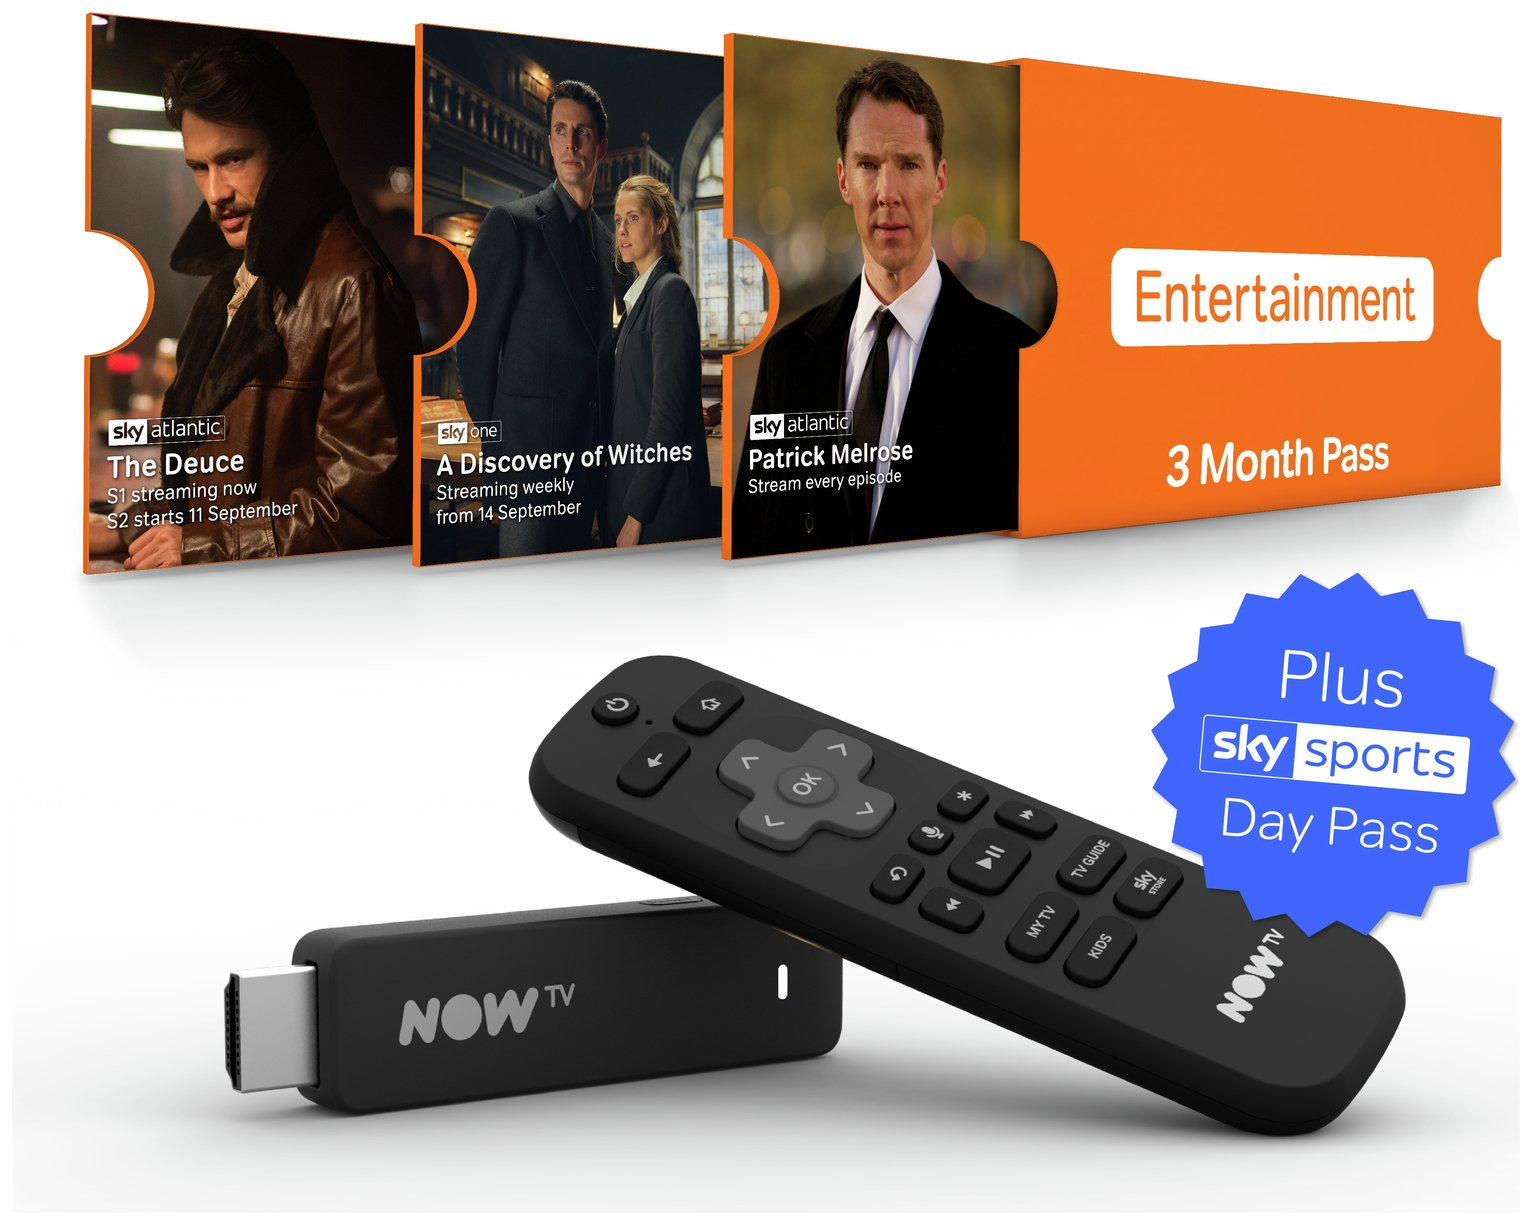 NOW TV Stick With 3 month Entertainment + 1 Day Sports Pass review